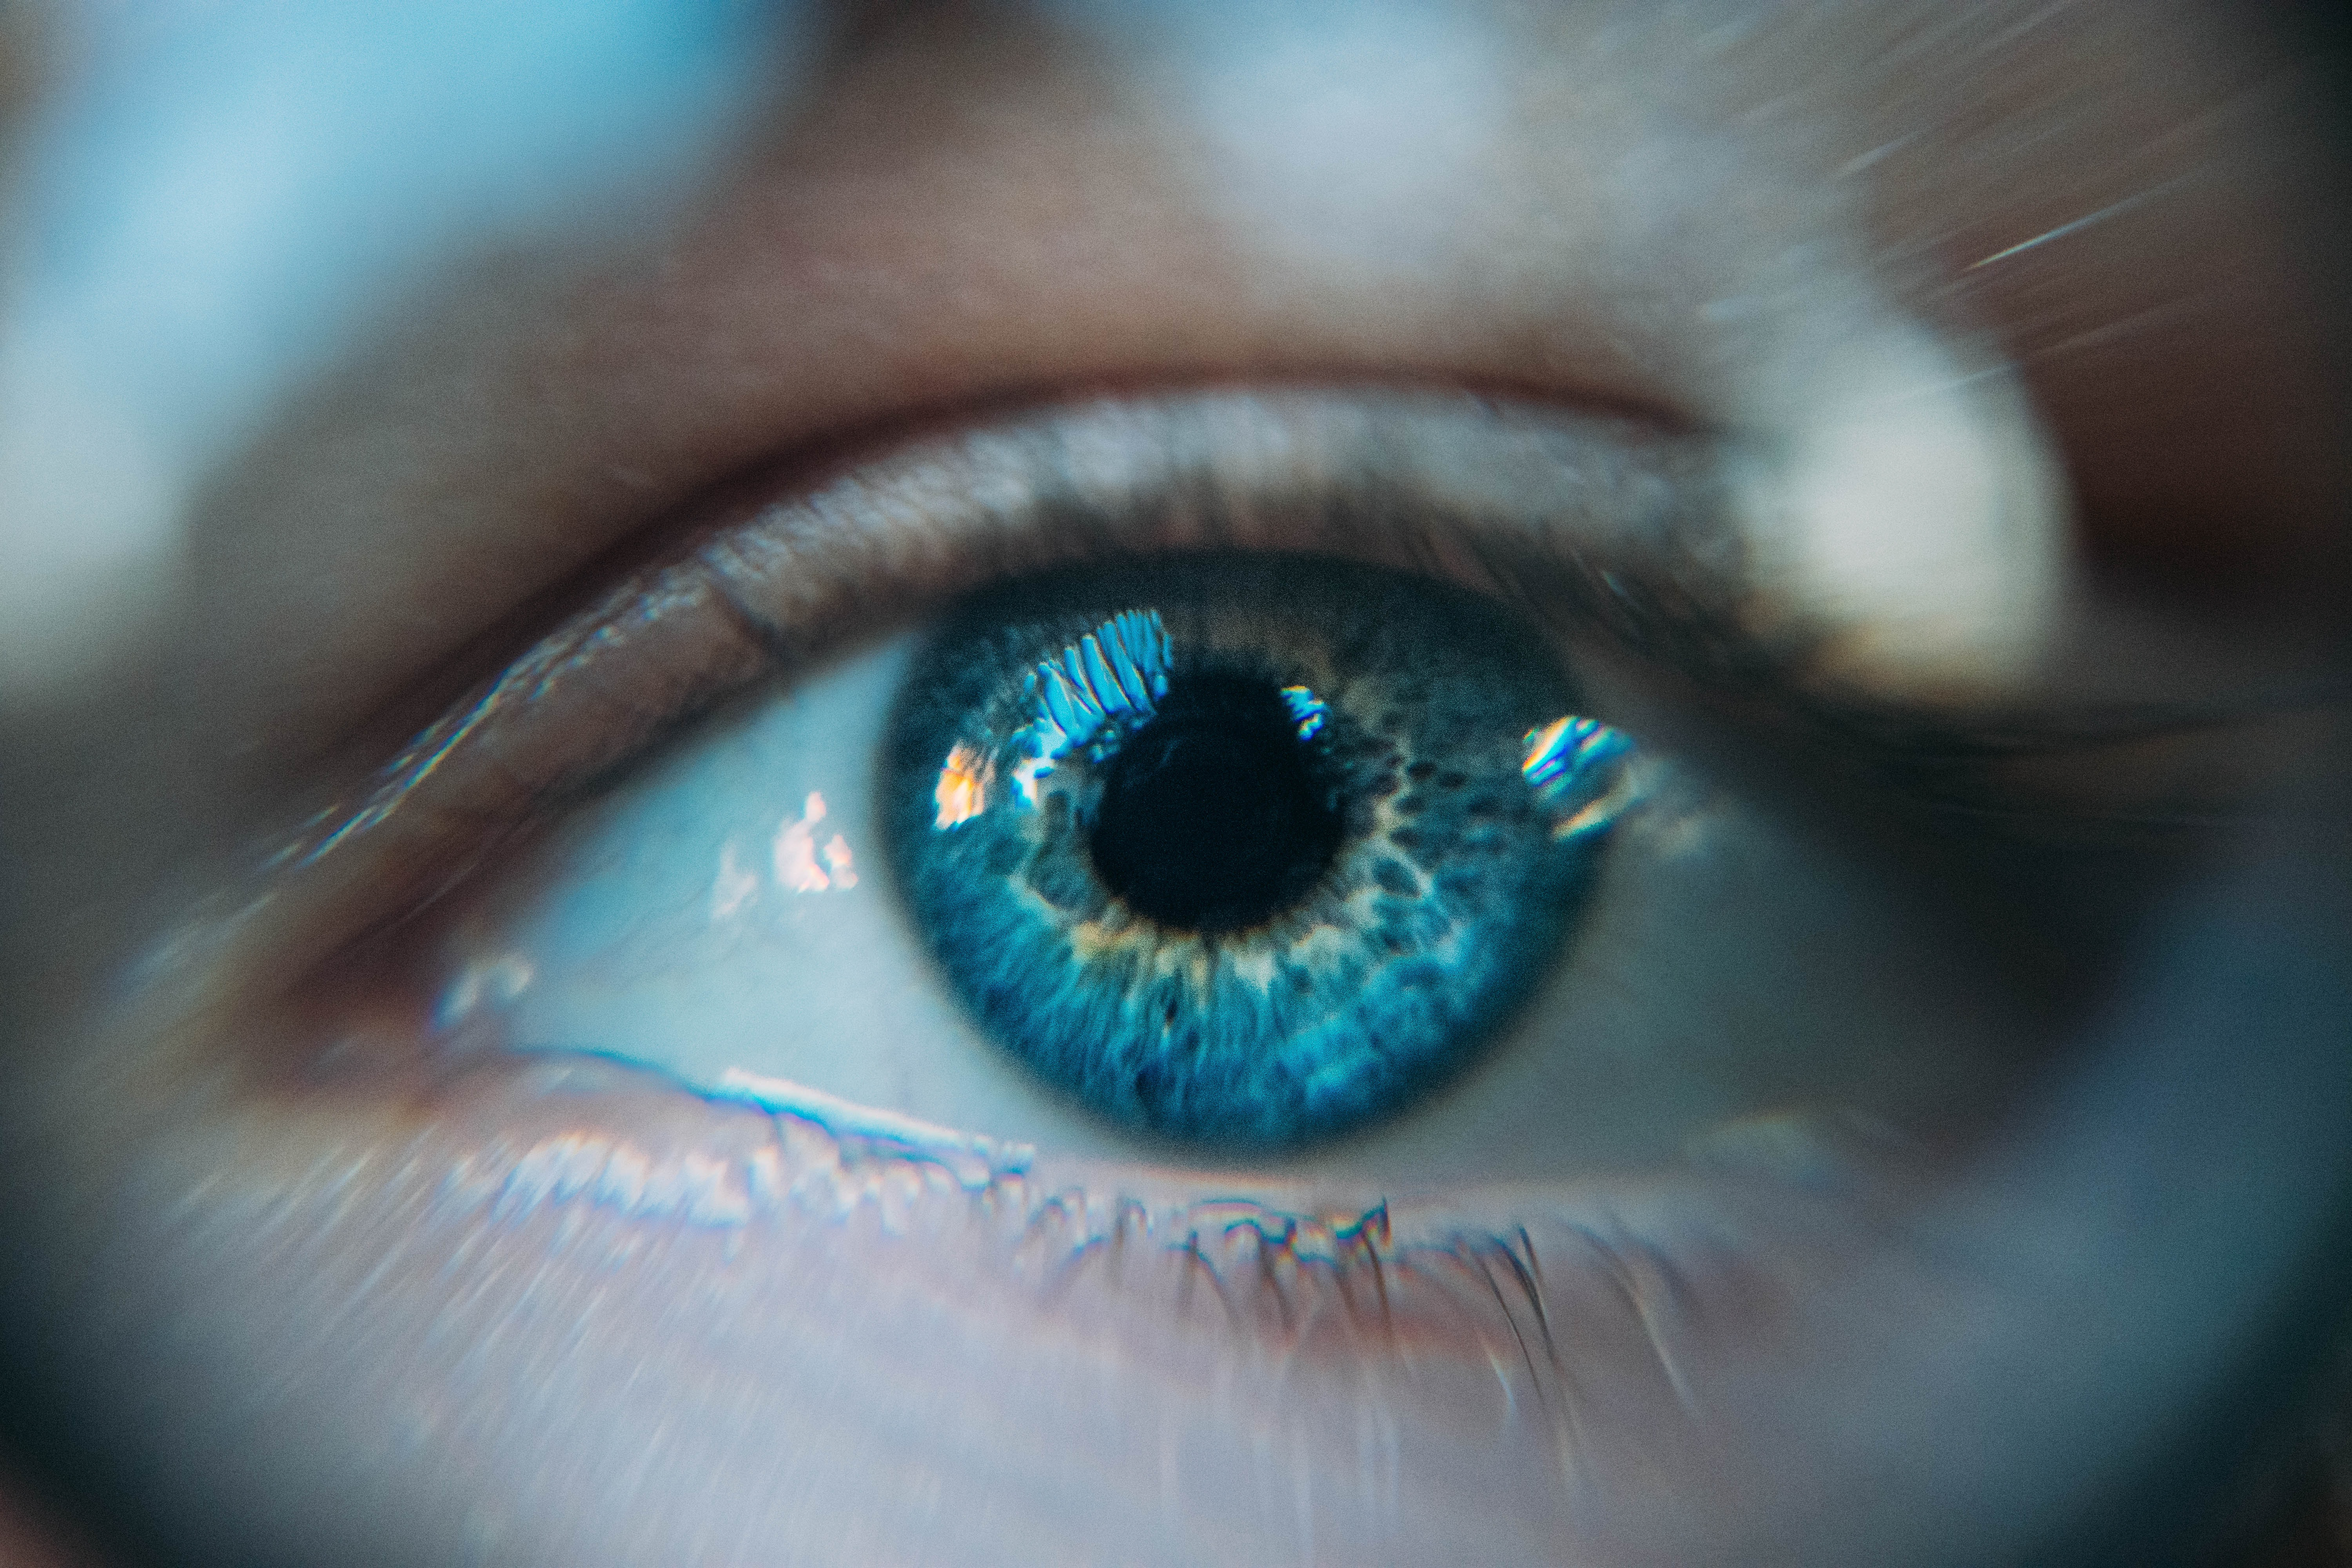 eye that is being recorded by an eye trracking technology